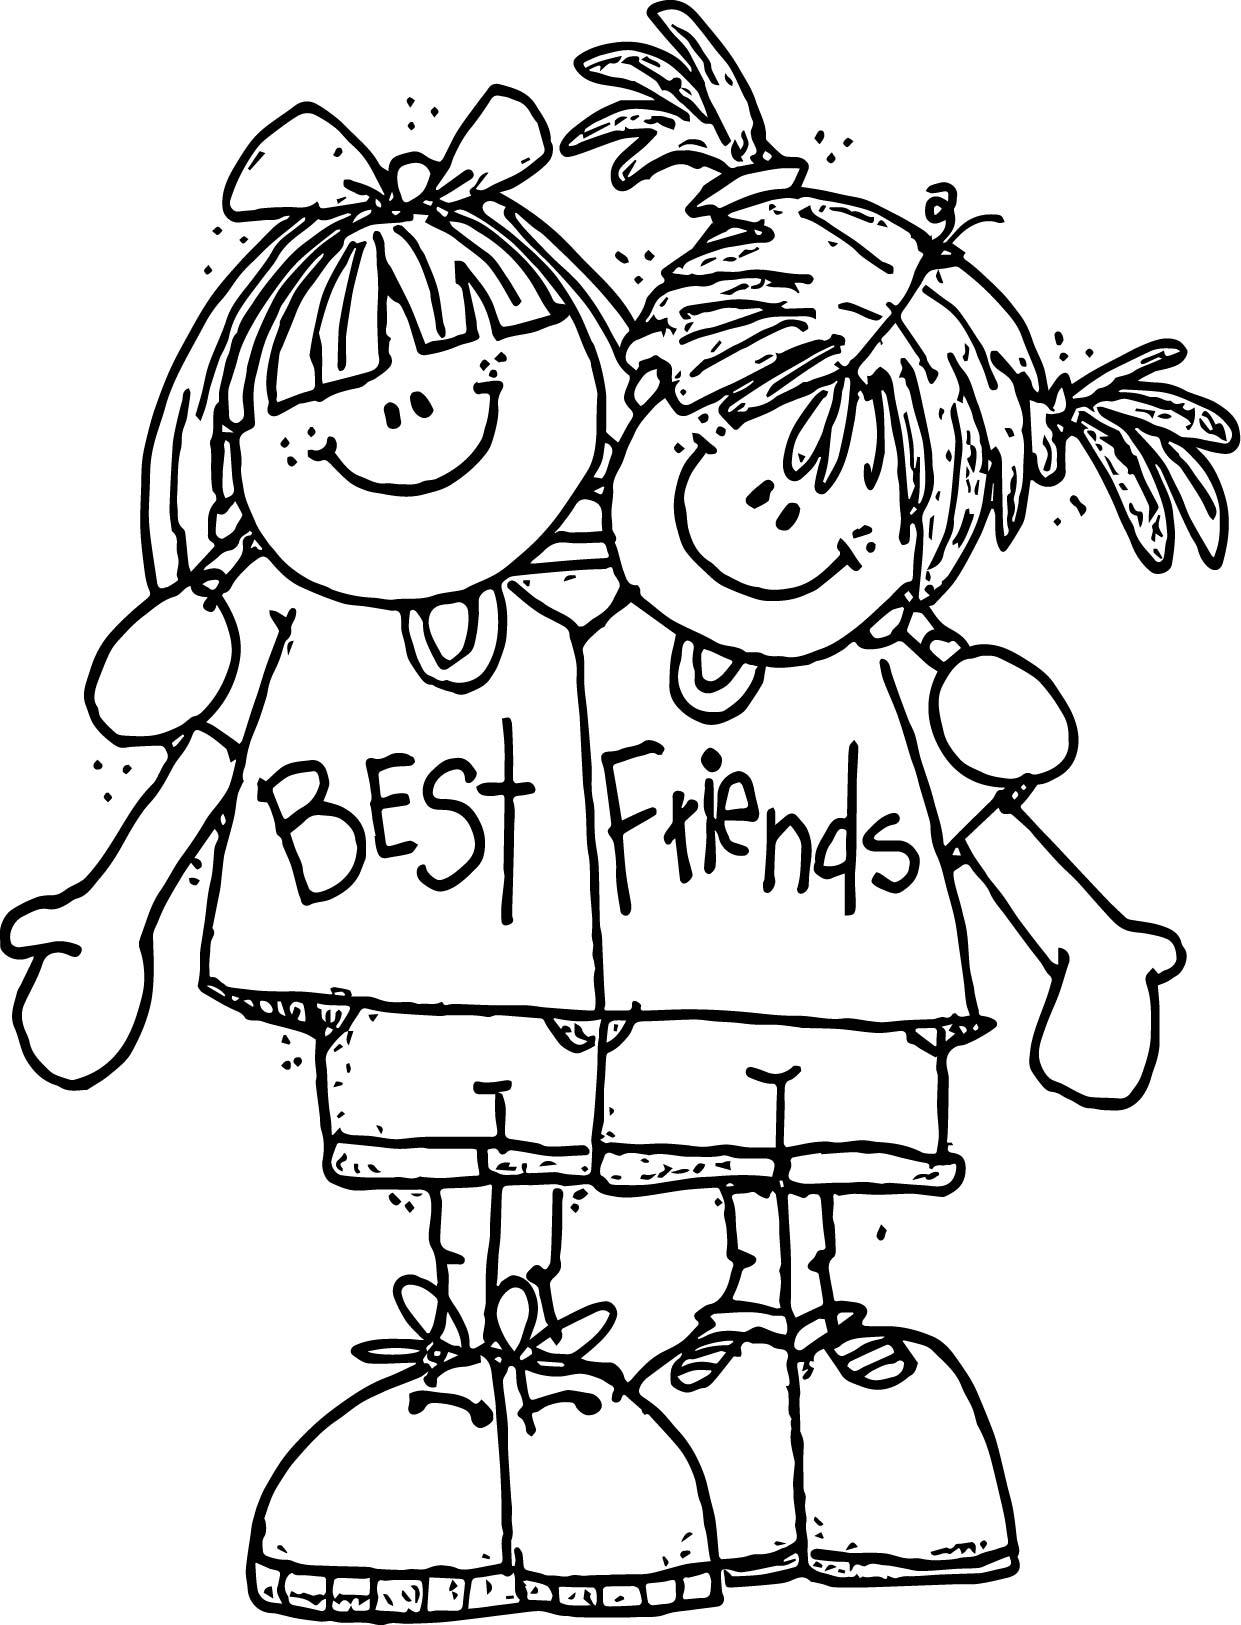 Best Friends Friendship Coloring Page